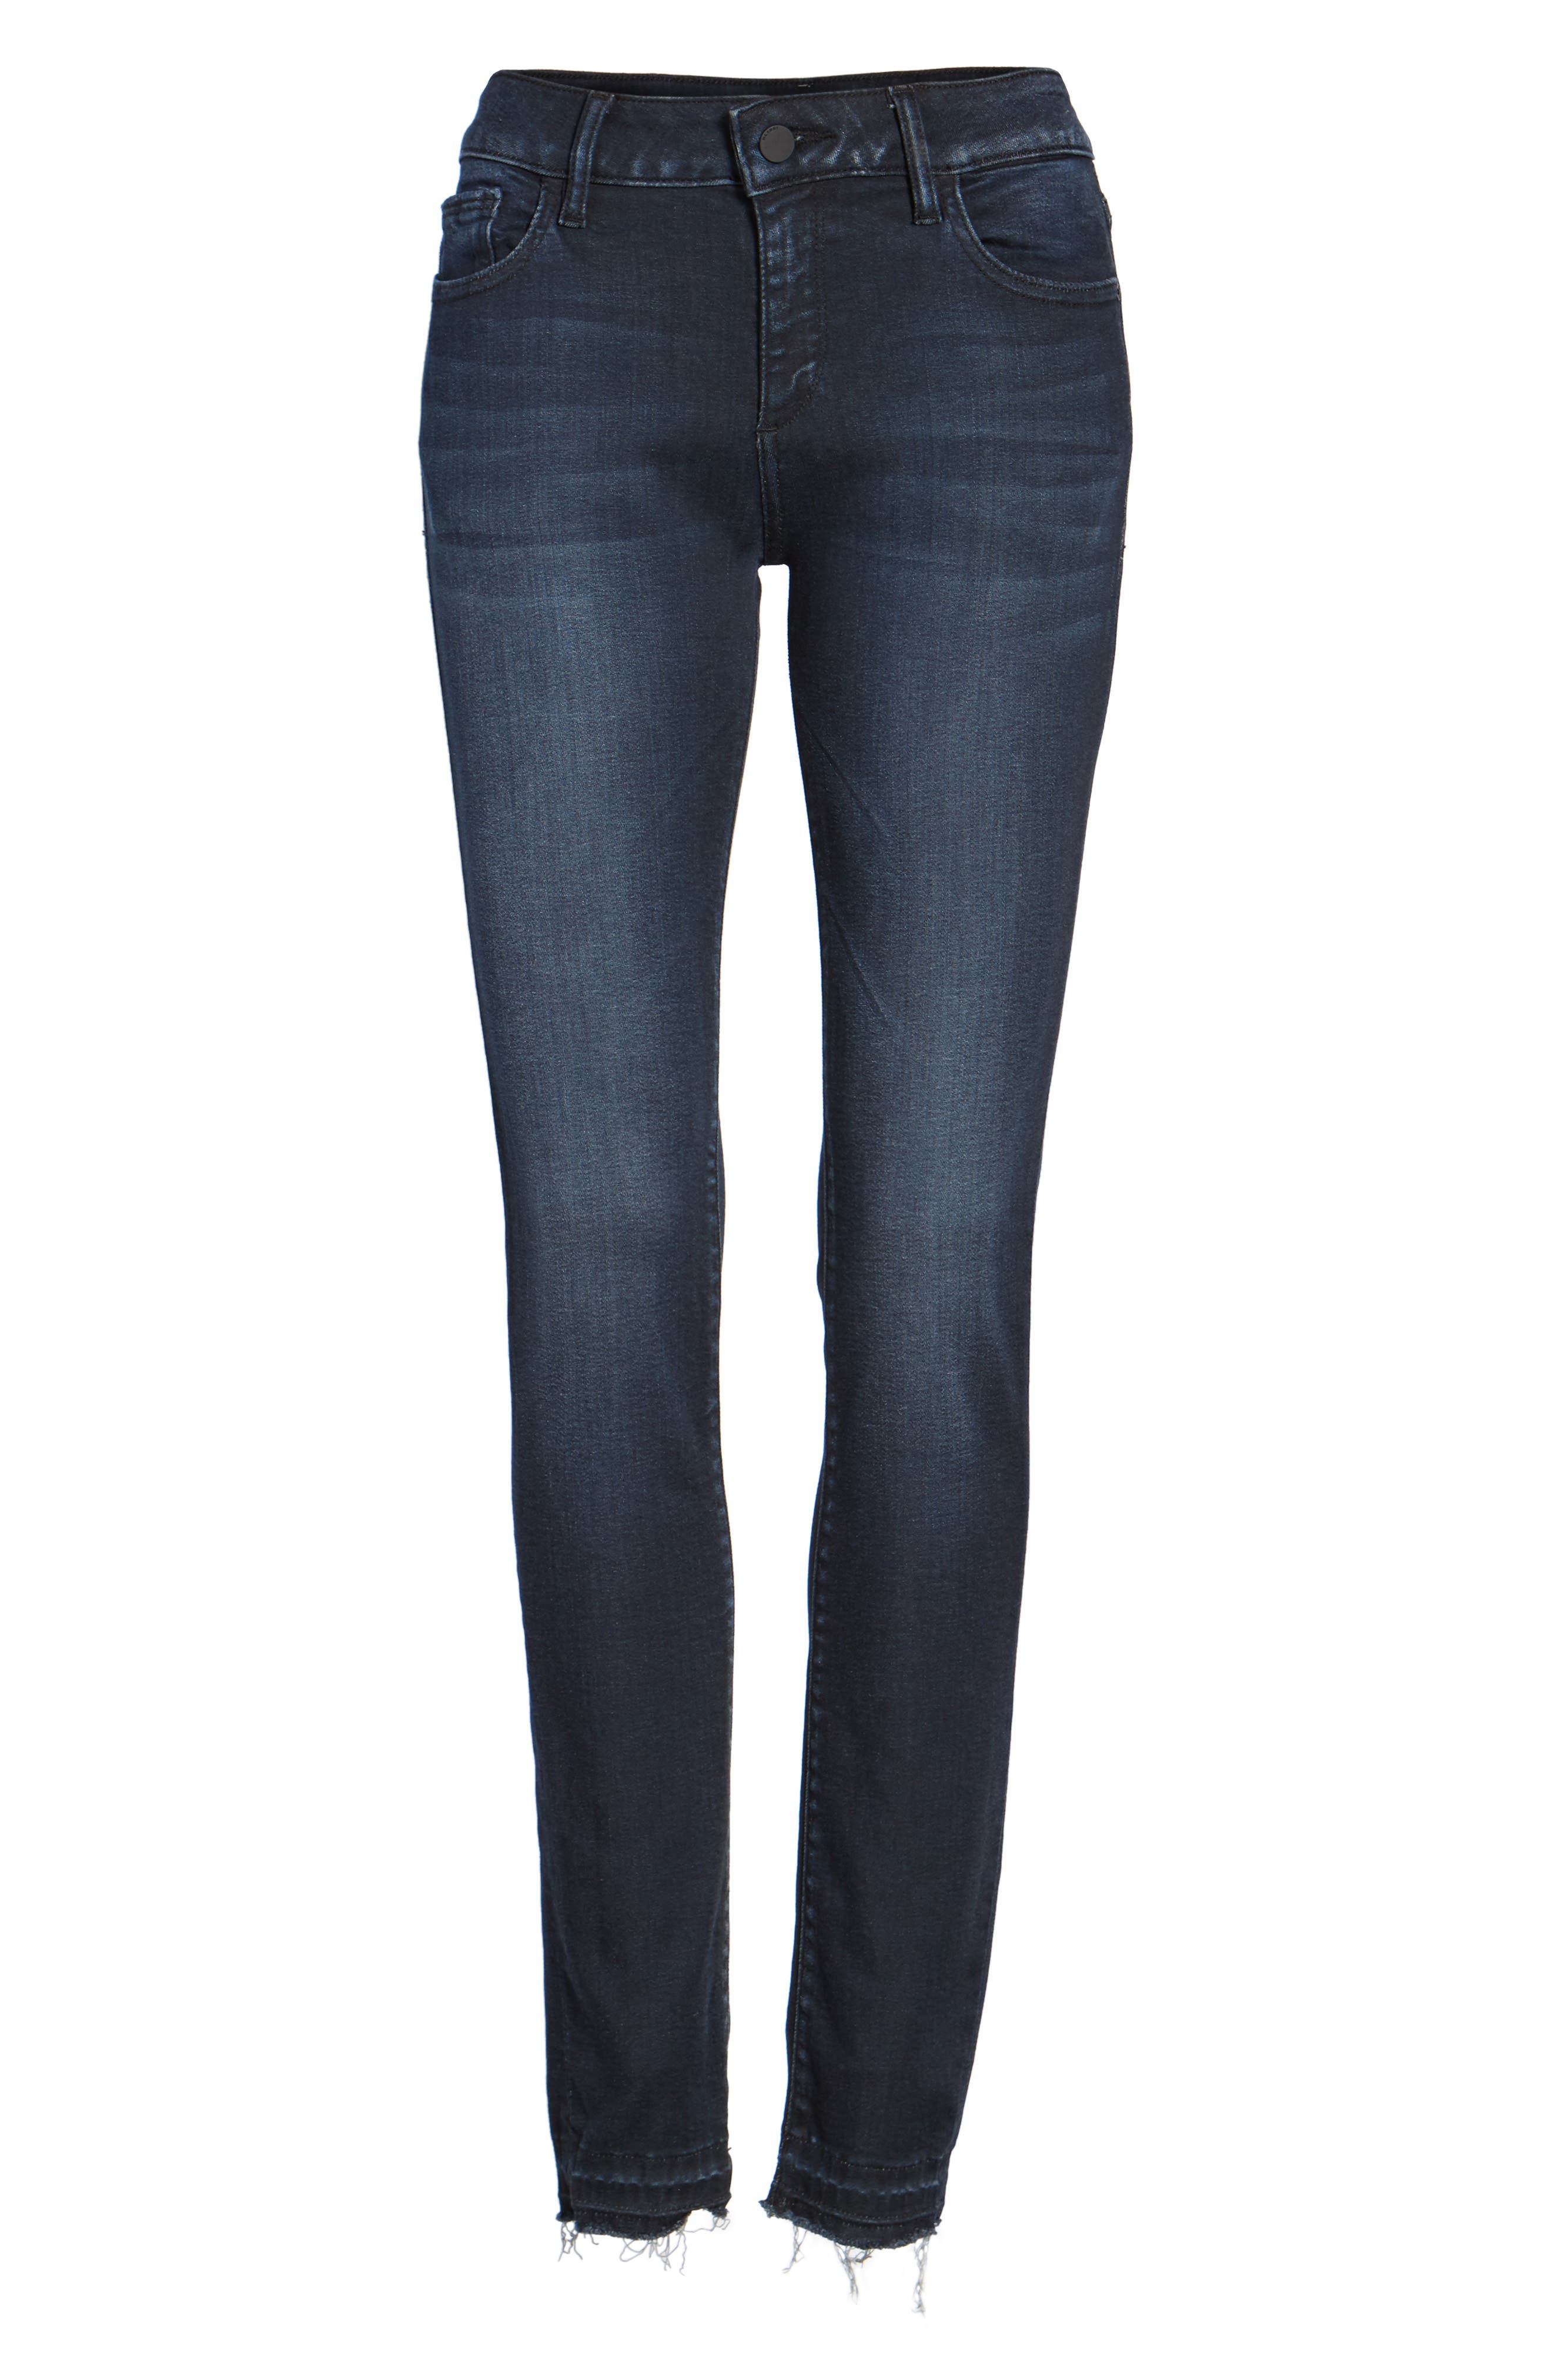 Florence Instasculpt Skinny Jeans,                             Alternate thumbnail 6, color,                             Sloan